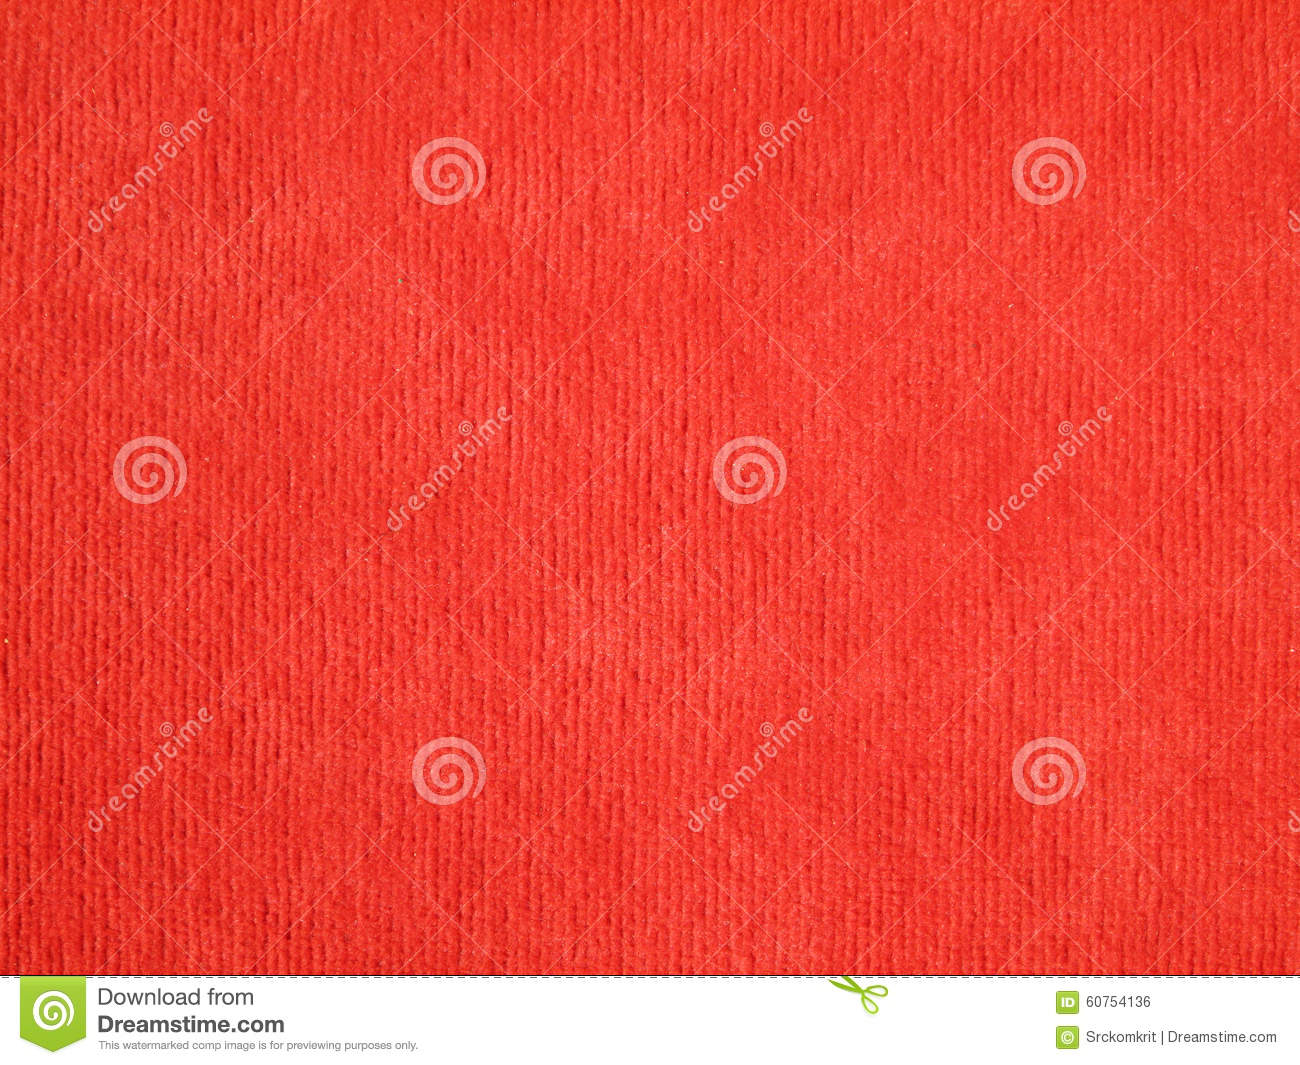 Fond de texture de tapis de couleur rouge photo stock for Moquette rouge texture